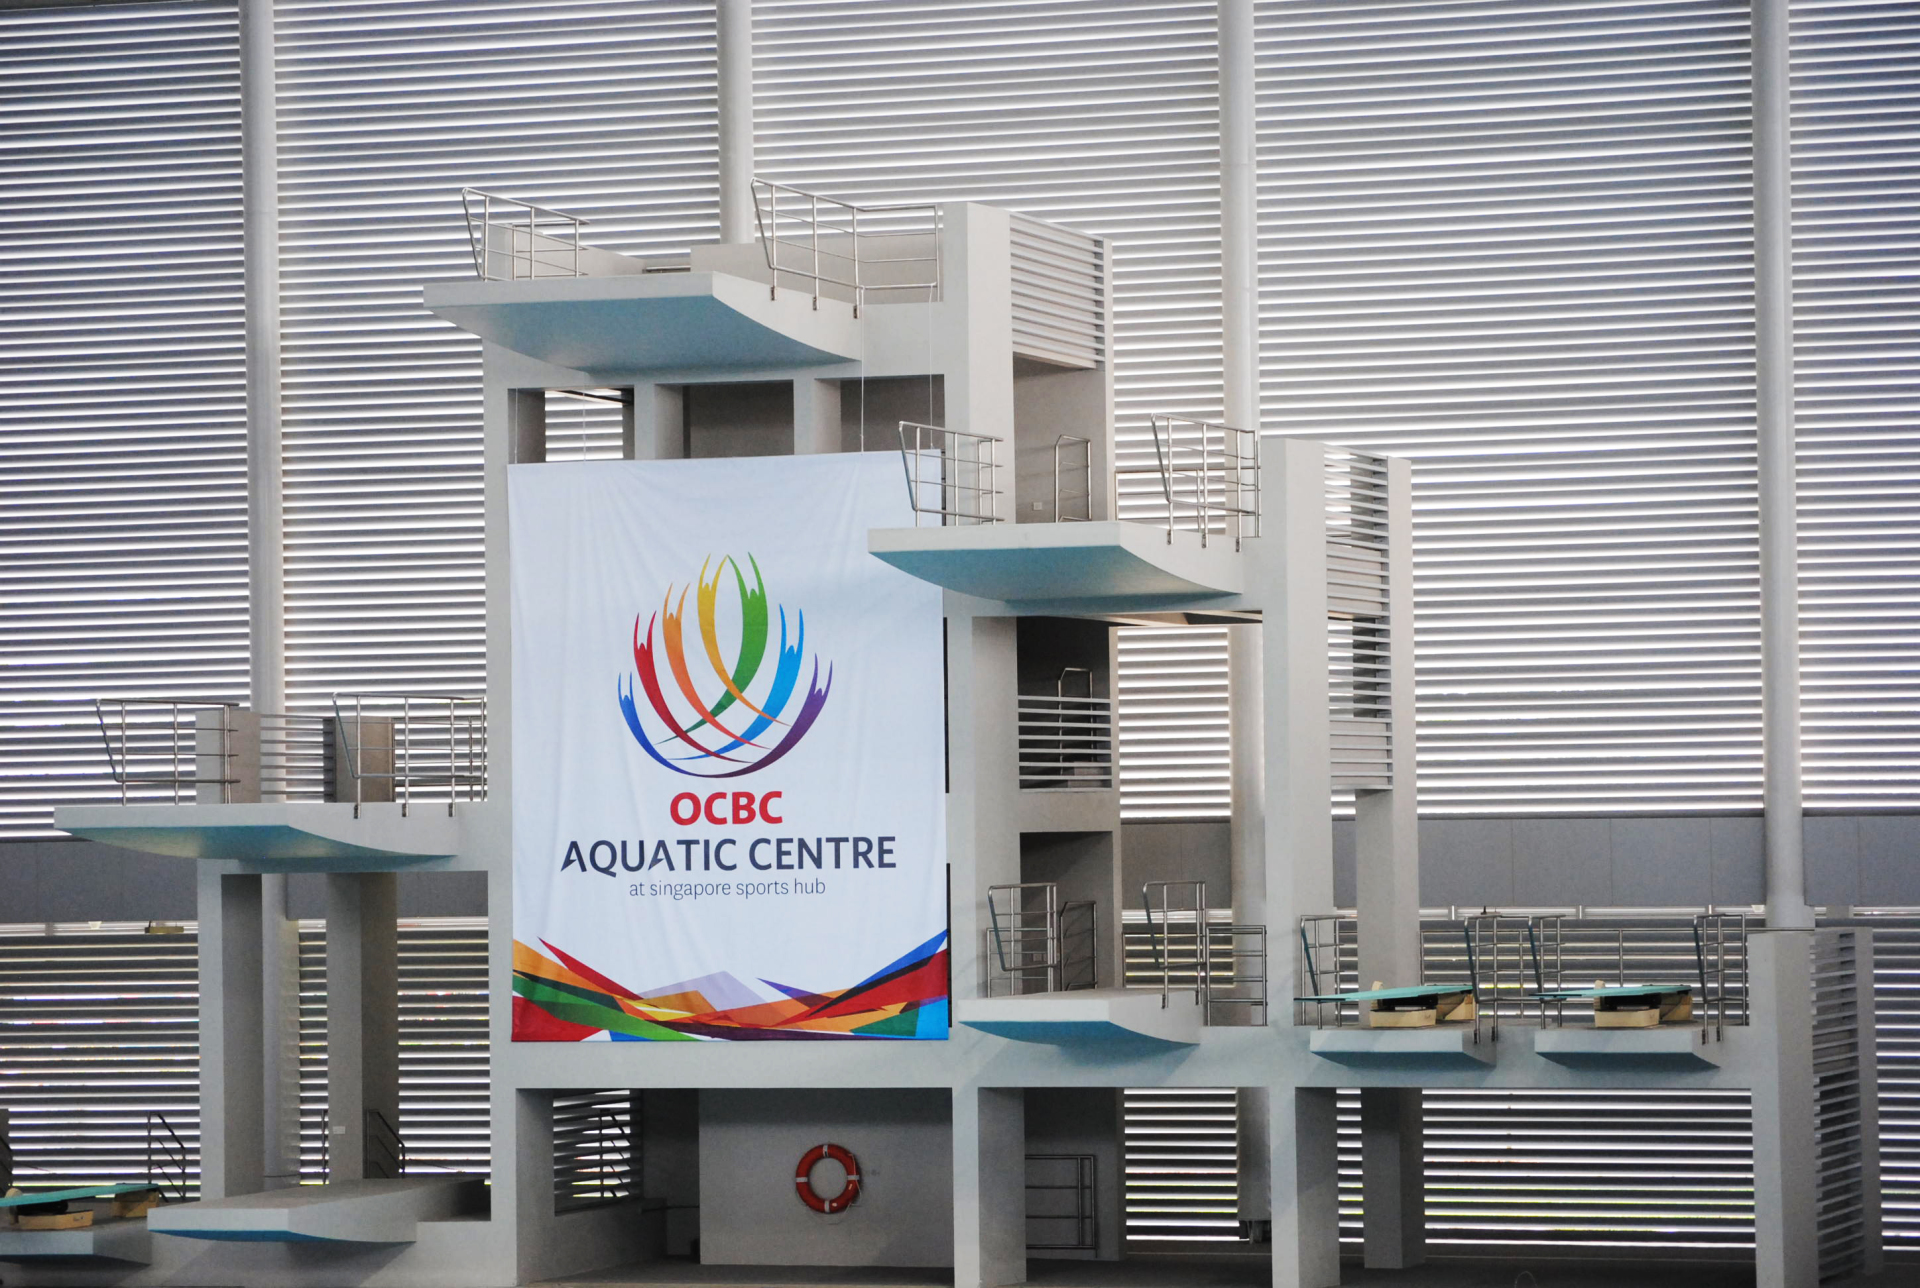 DIVING PLATFORM RAILINGS @ OCBC AQUATIC CENTRE